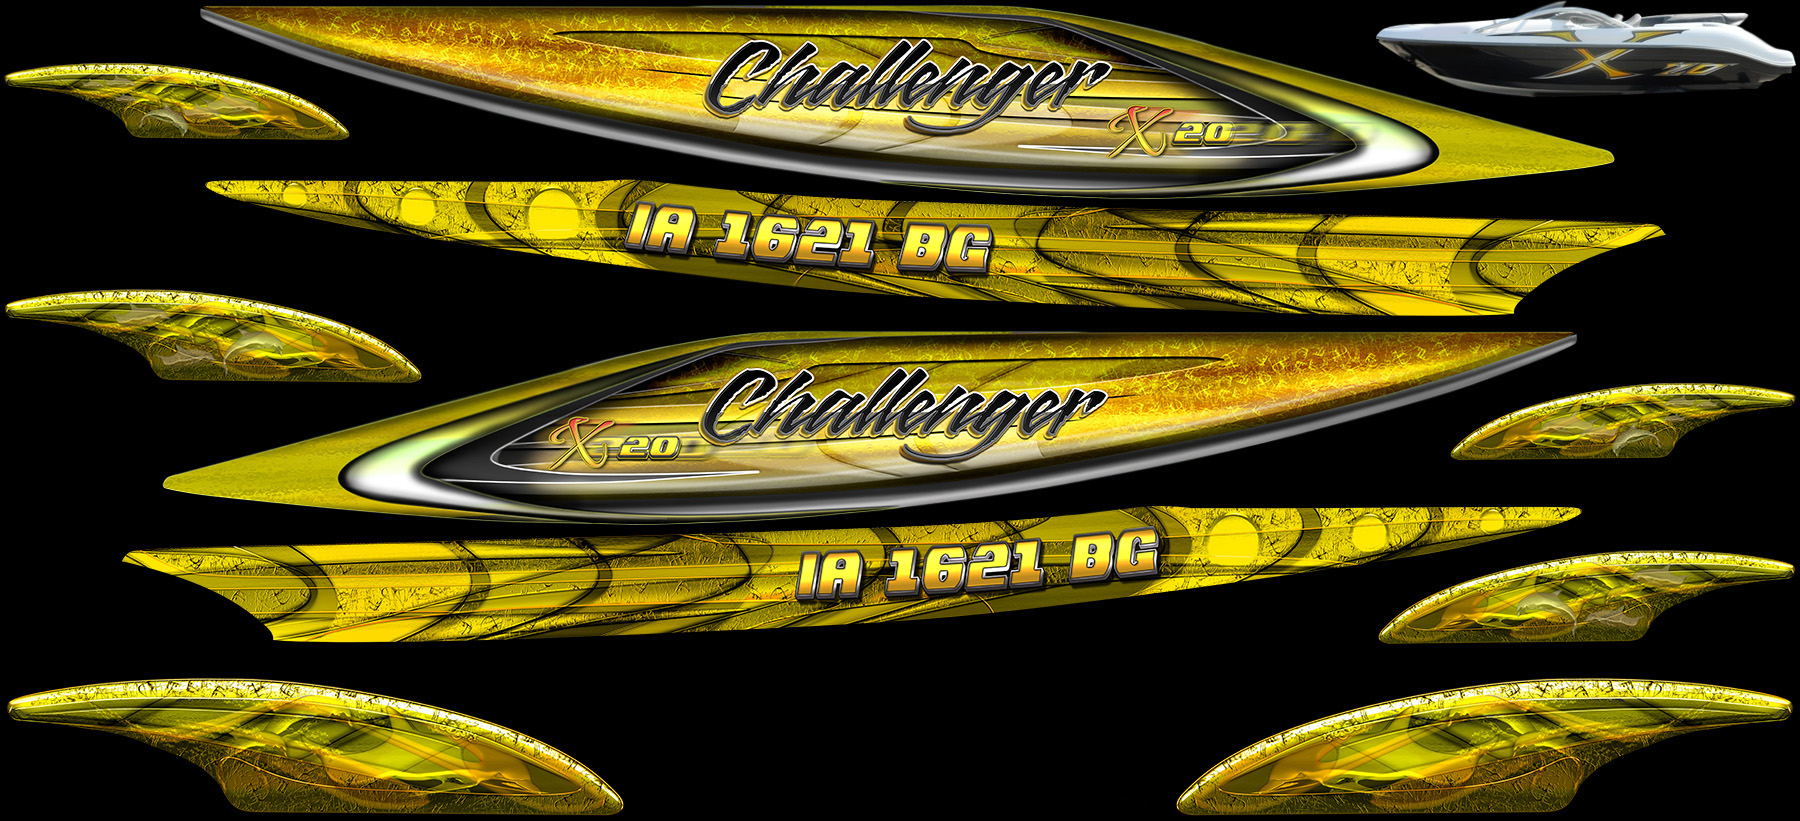 Jetski Detailing custom Sea-Doo Challenger x20 series graphics